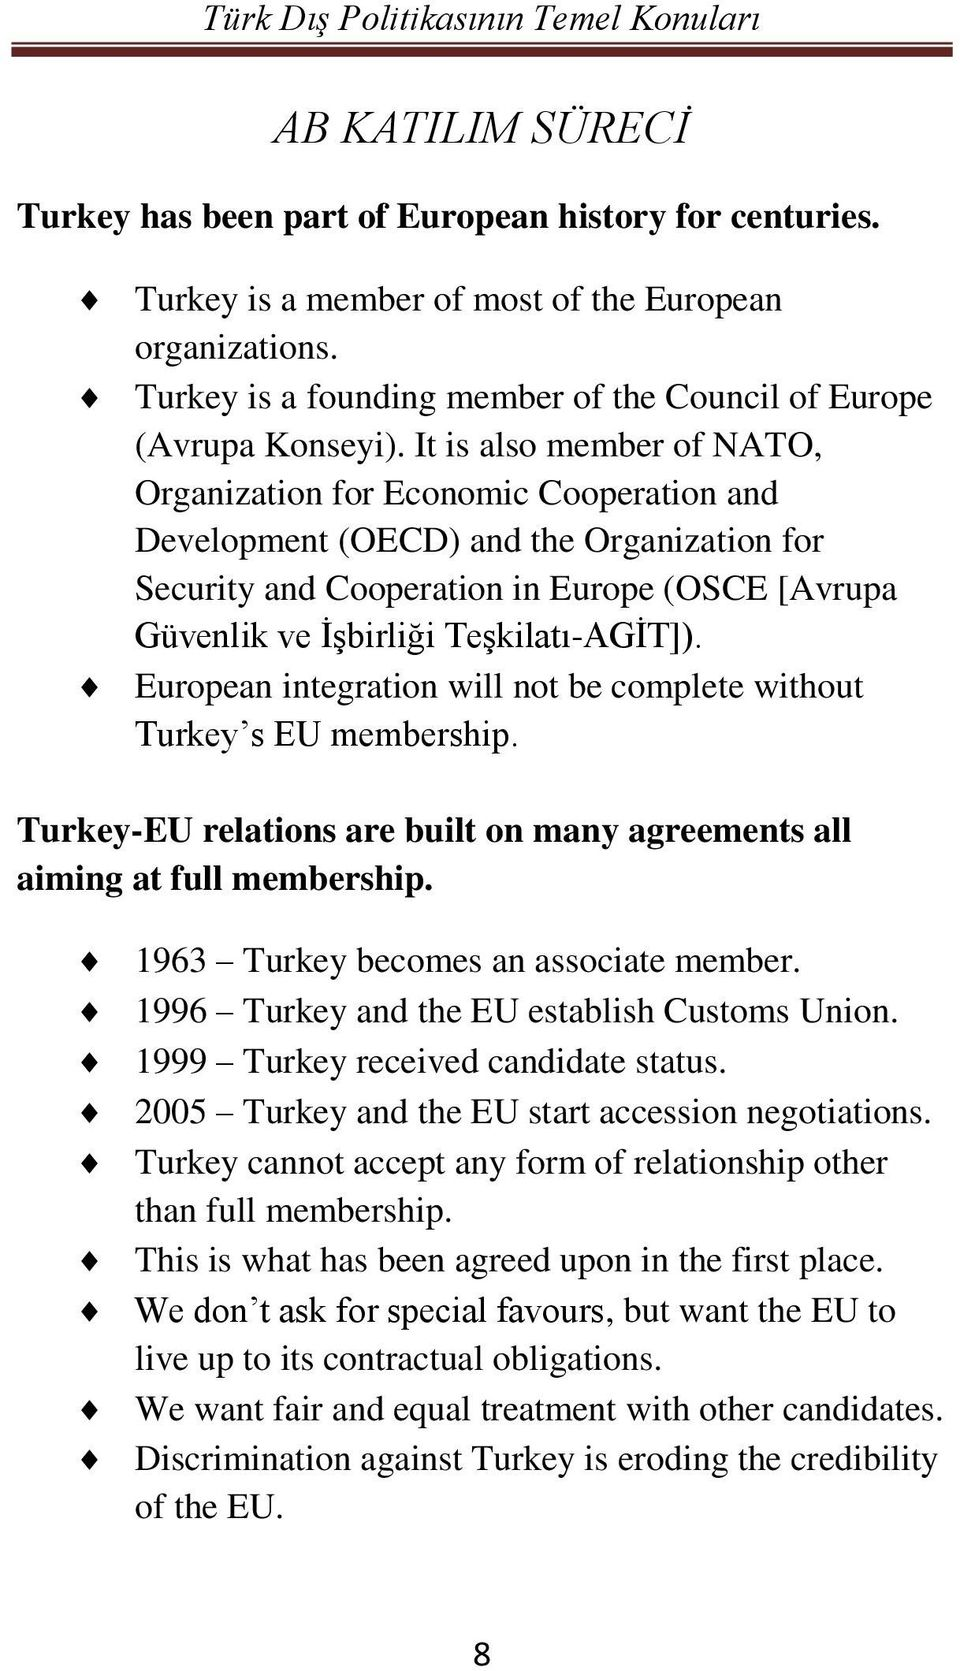 It is also member of NATO, Organization for Economic Cooperation and Development (OECD) and the Organization for Security and Cooperation in Europe (OSCE [Avrupa Güvenlik ve İşbirliği